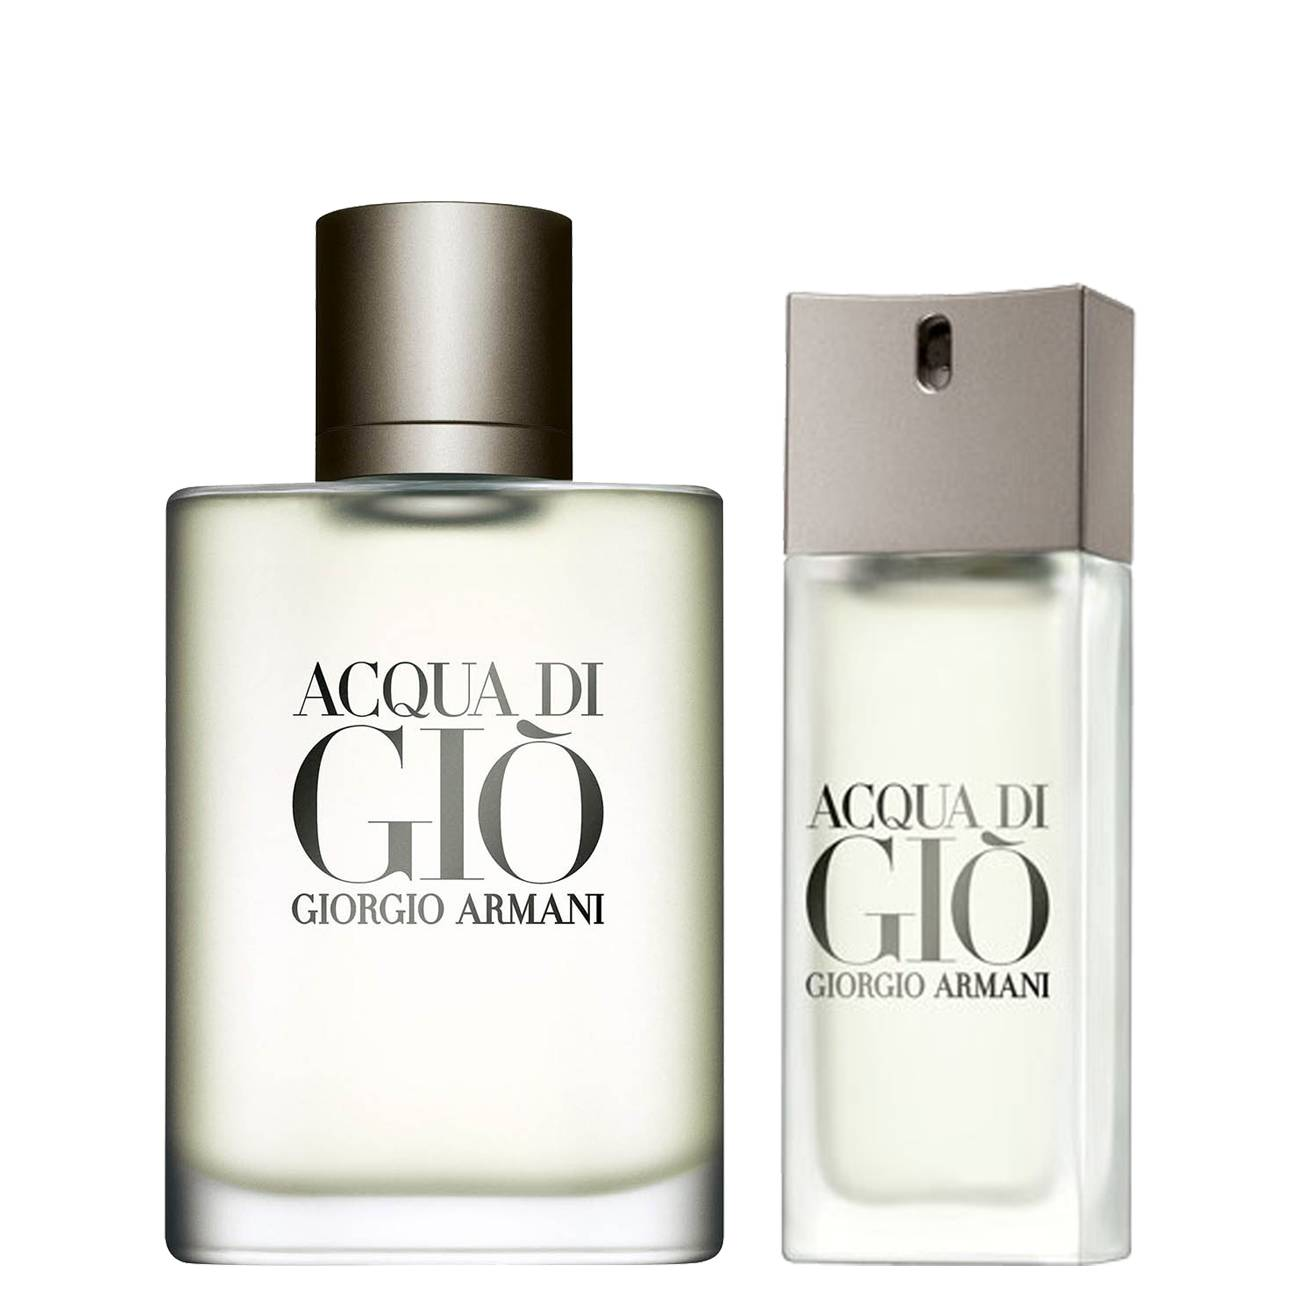 ACQUA DI GIO 120 ML 120ml